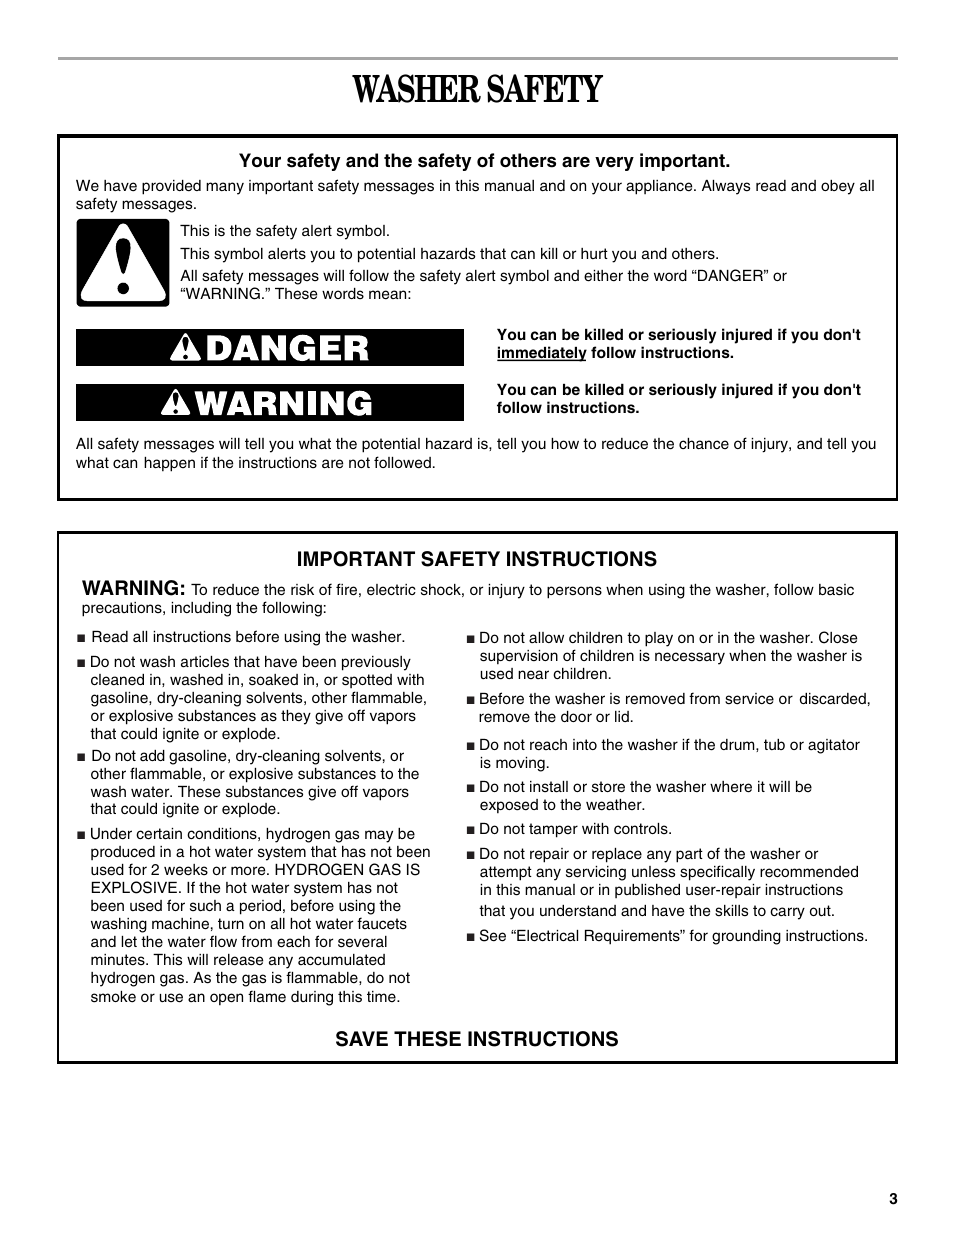 Safety Washer Safety Warning Whirlpool 3955155a User Manual